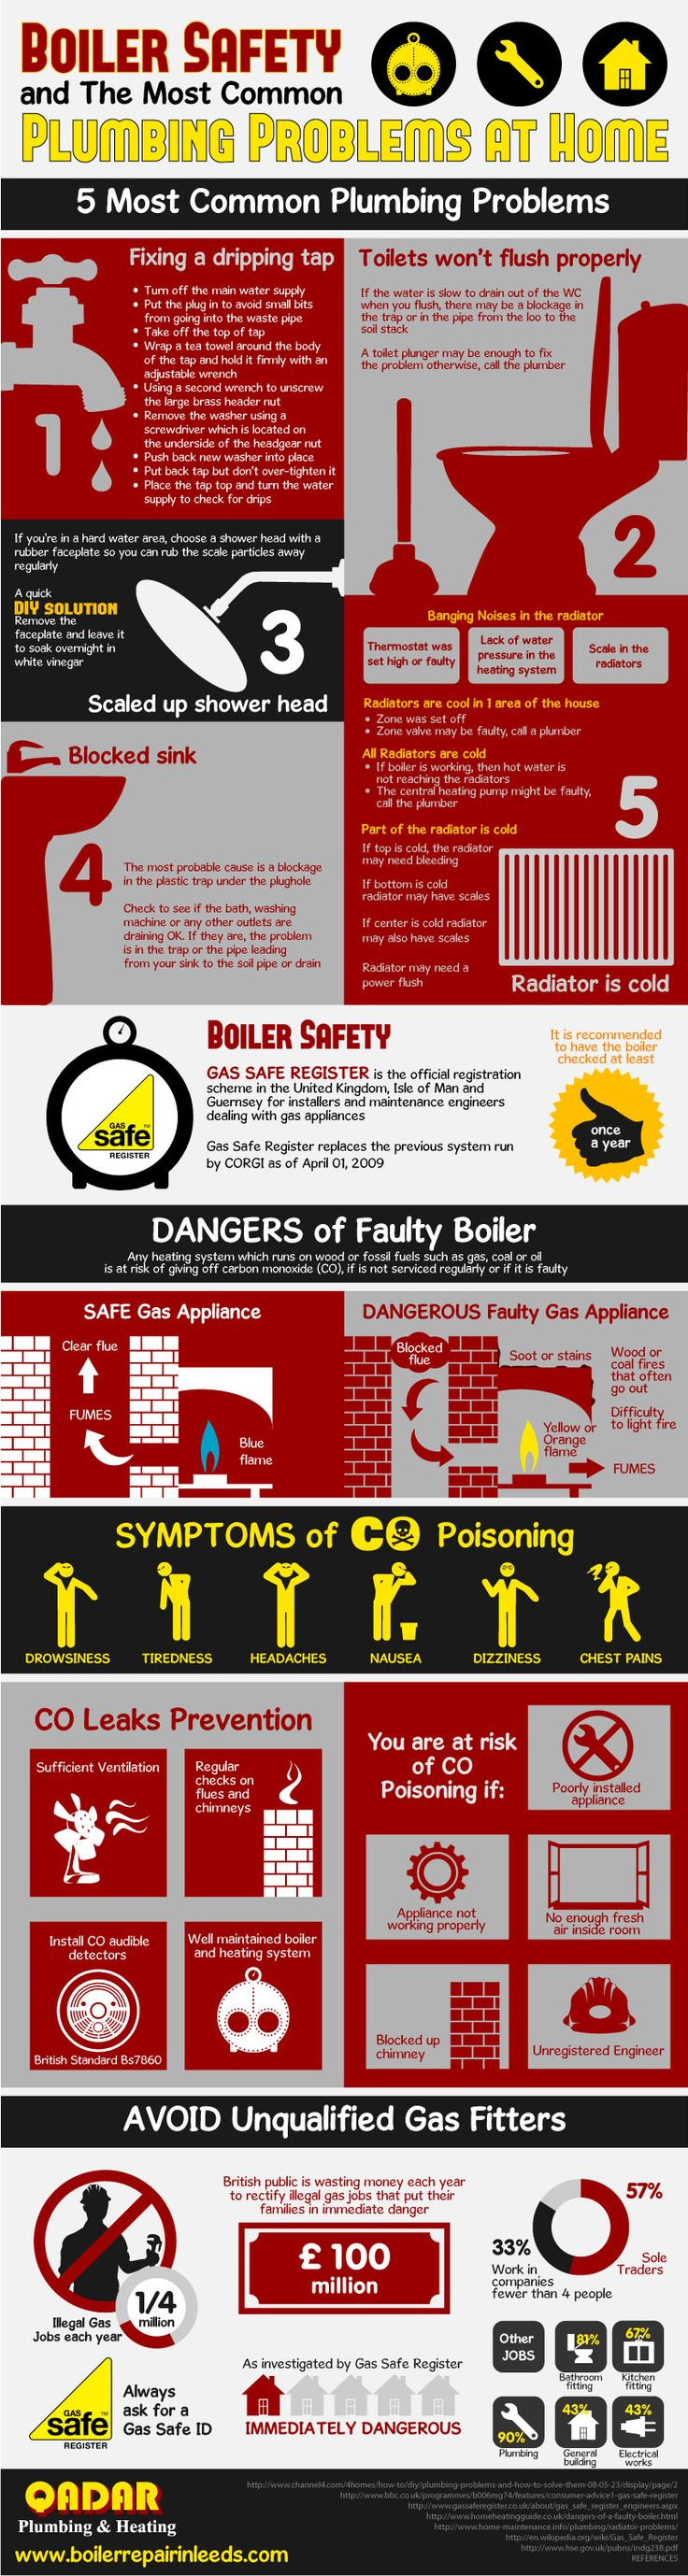 65 best heating engineers info graphics images on pinterest boiler boiler safety and the most common plumbing problems at home fandeluxe Image collections